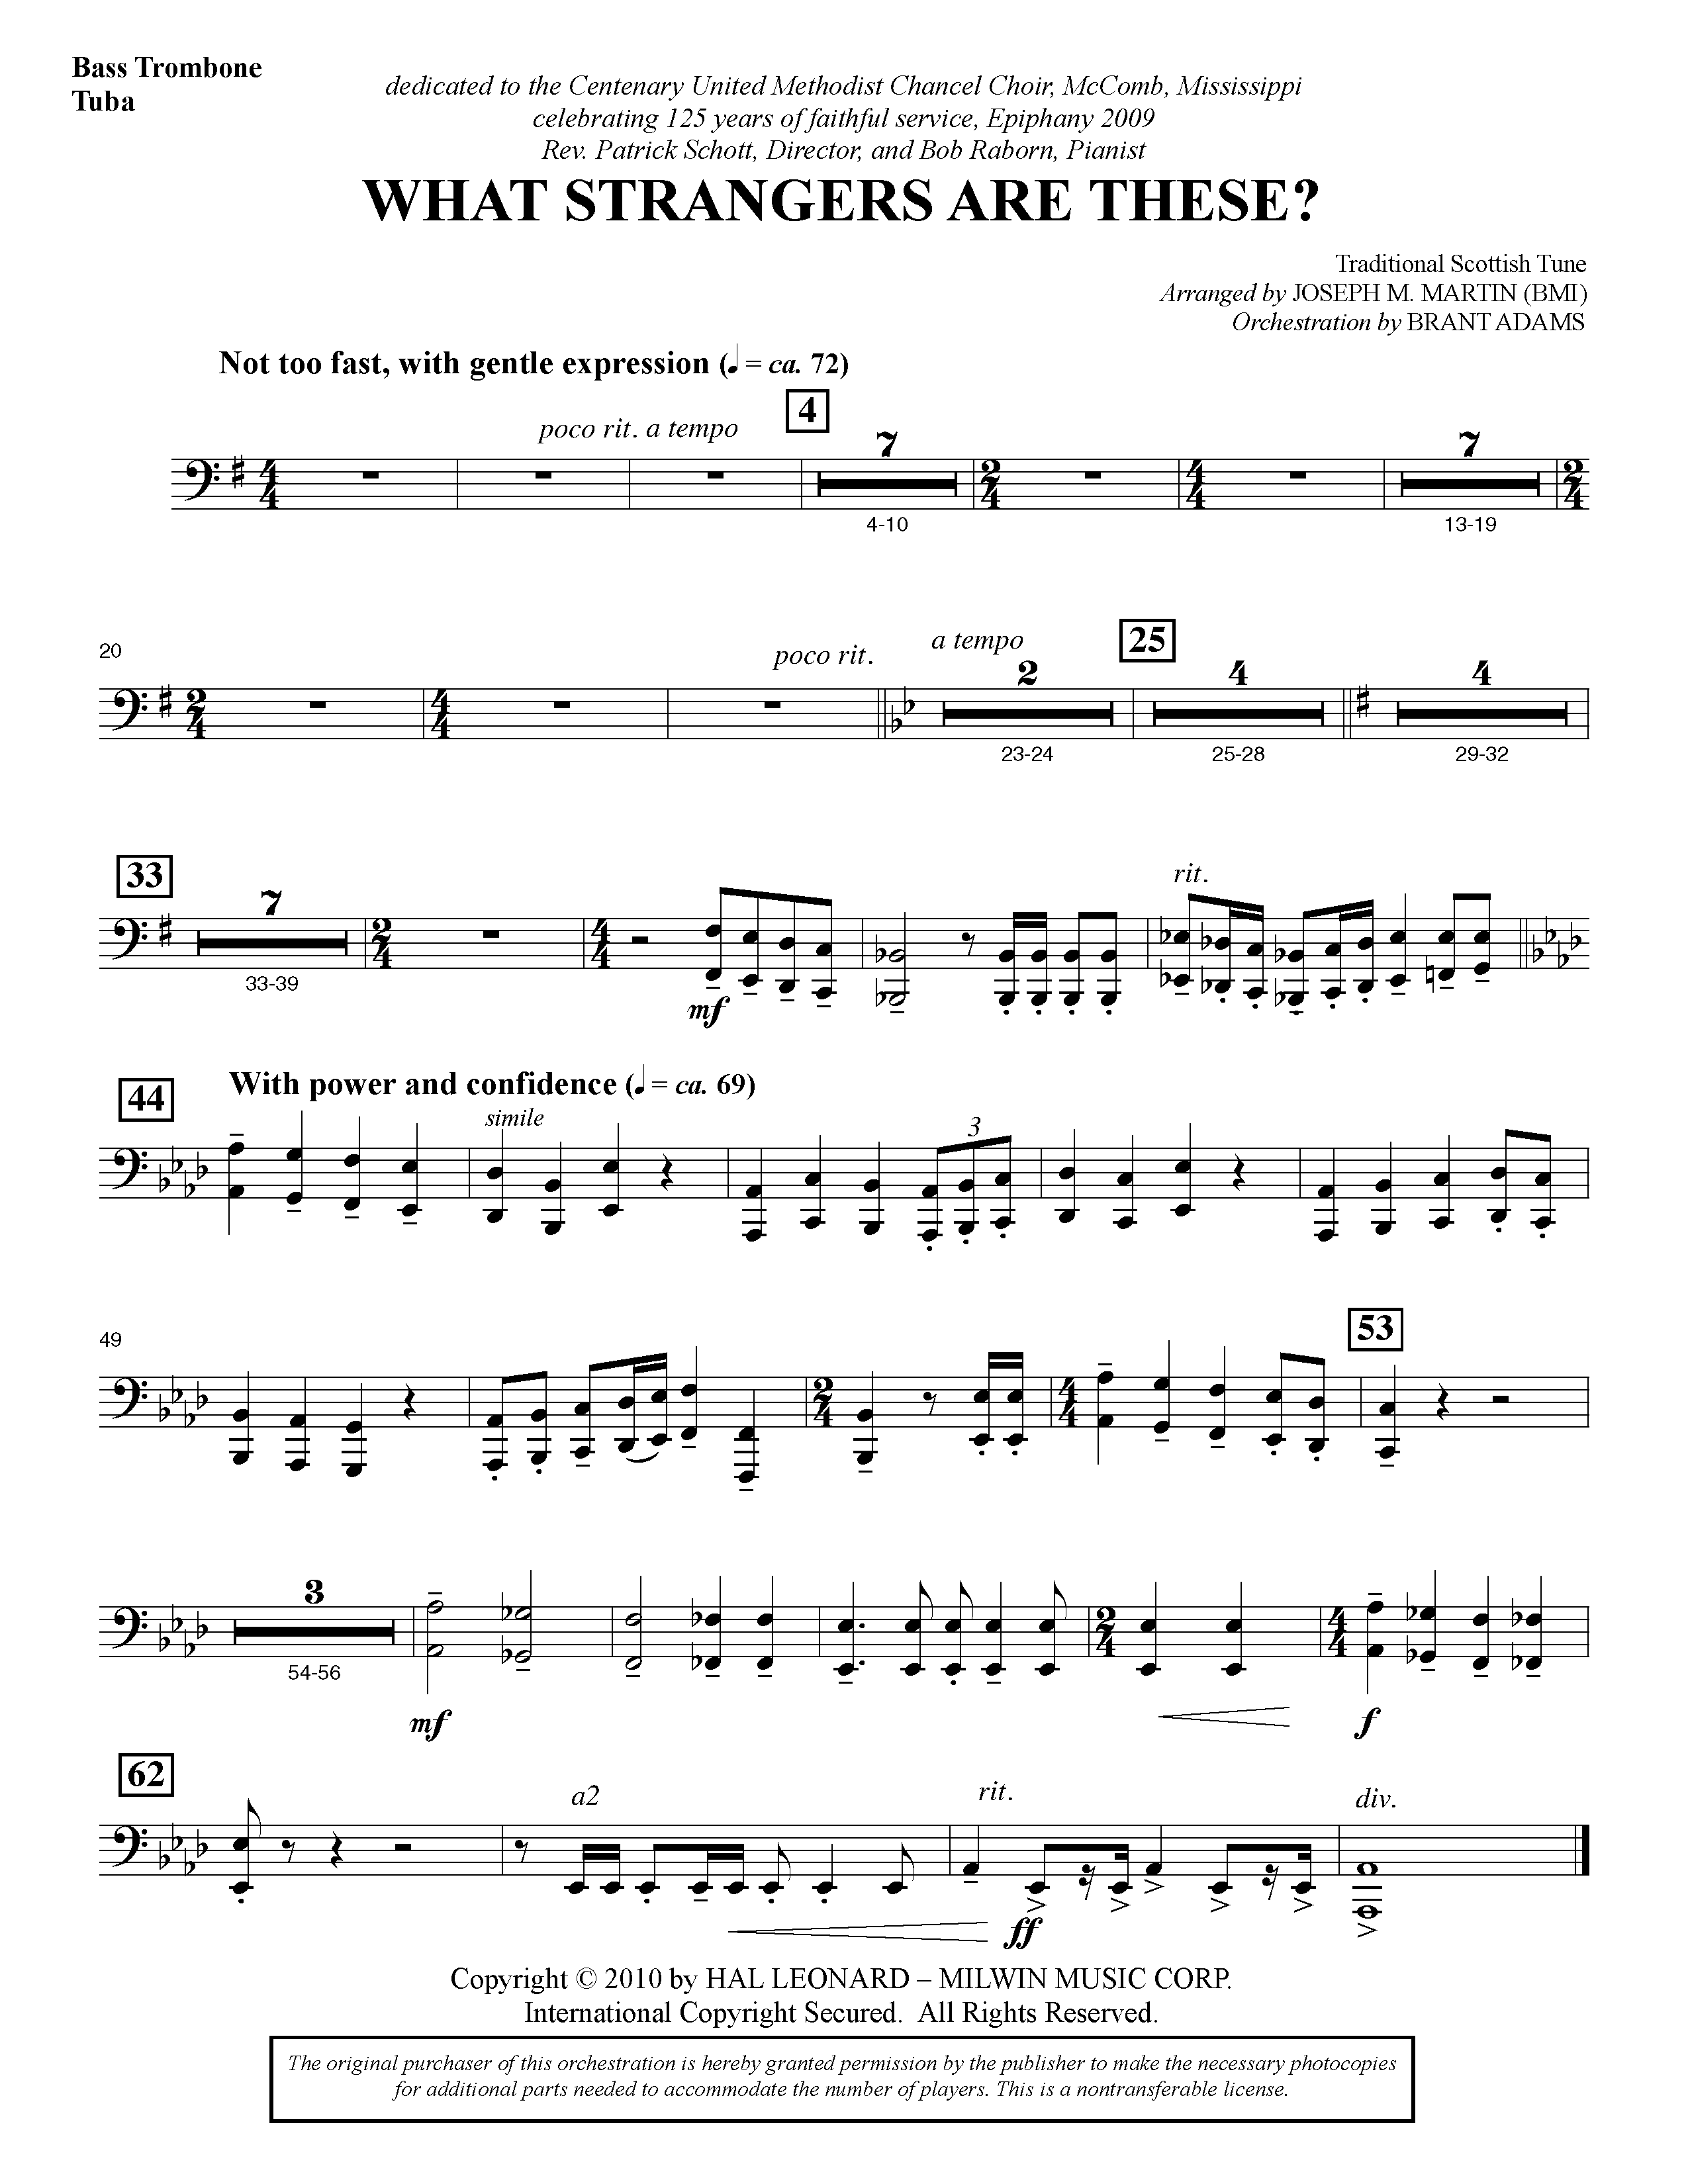 Joseph Martin What Strangers Are These? (from Winter's Grace) - Bass Trombone/Tuba sheet music notes and chords